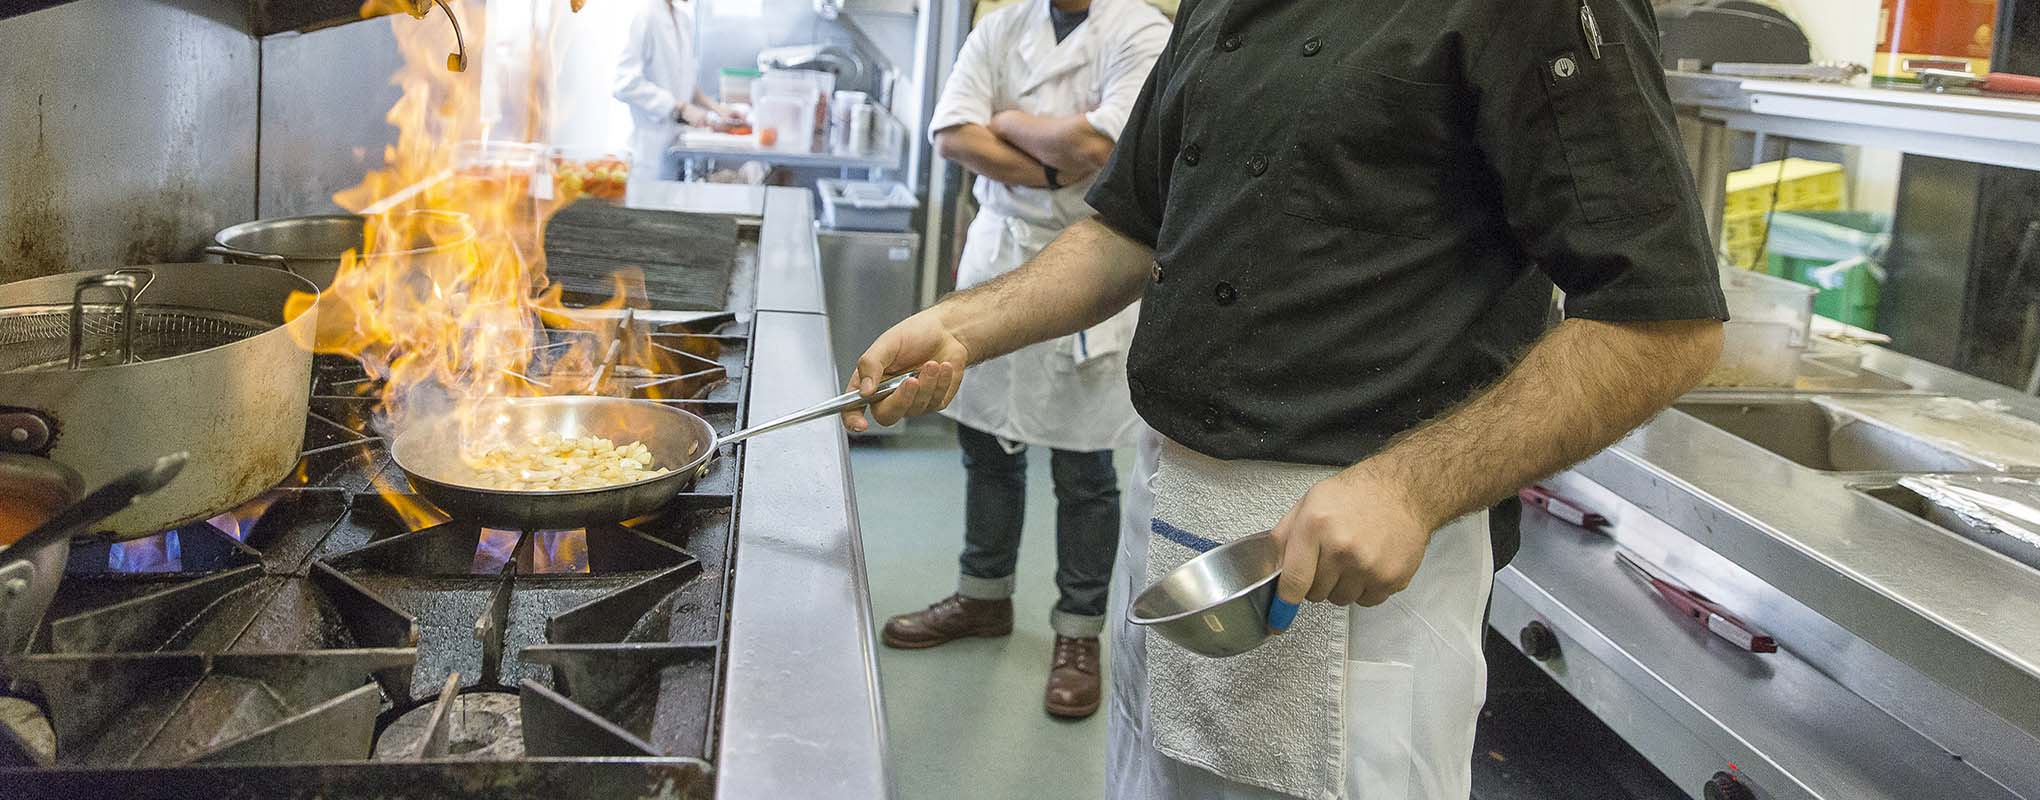 Cooking at San Francisco State University